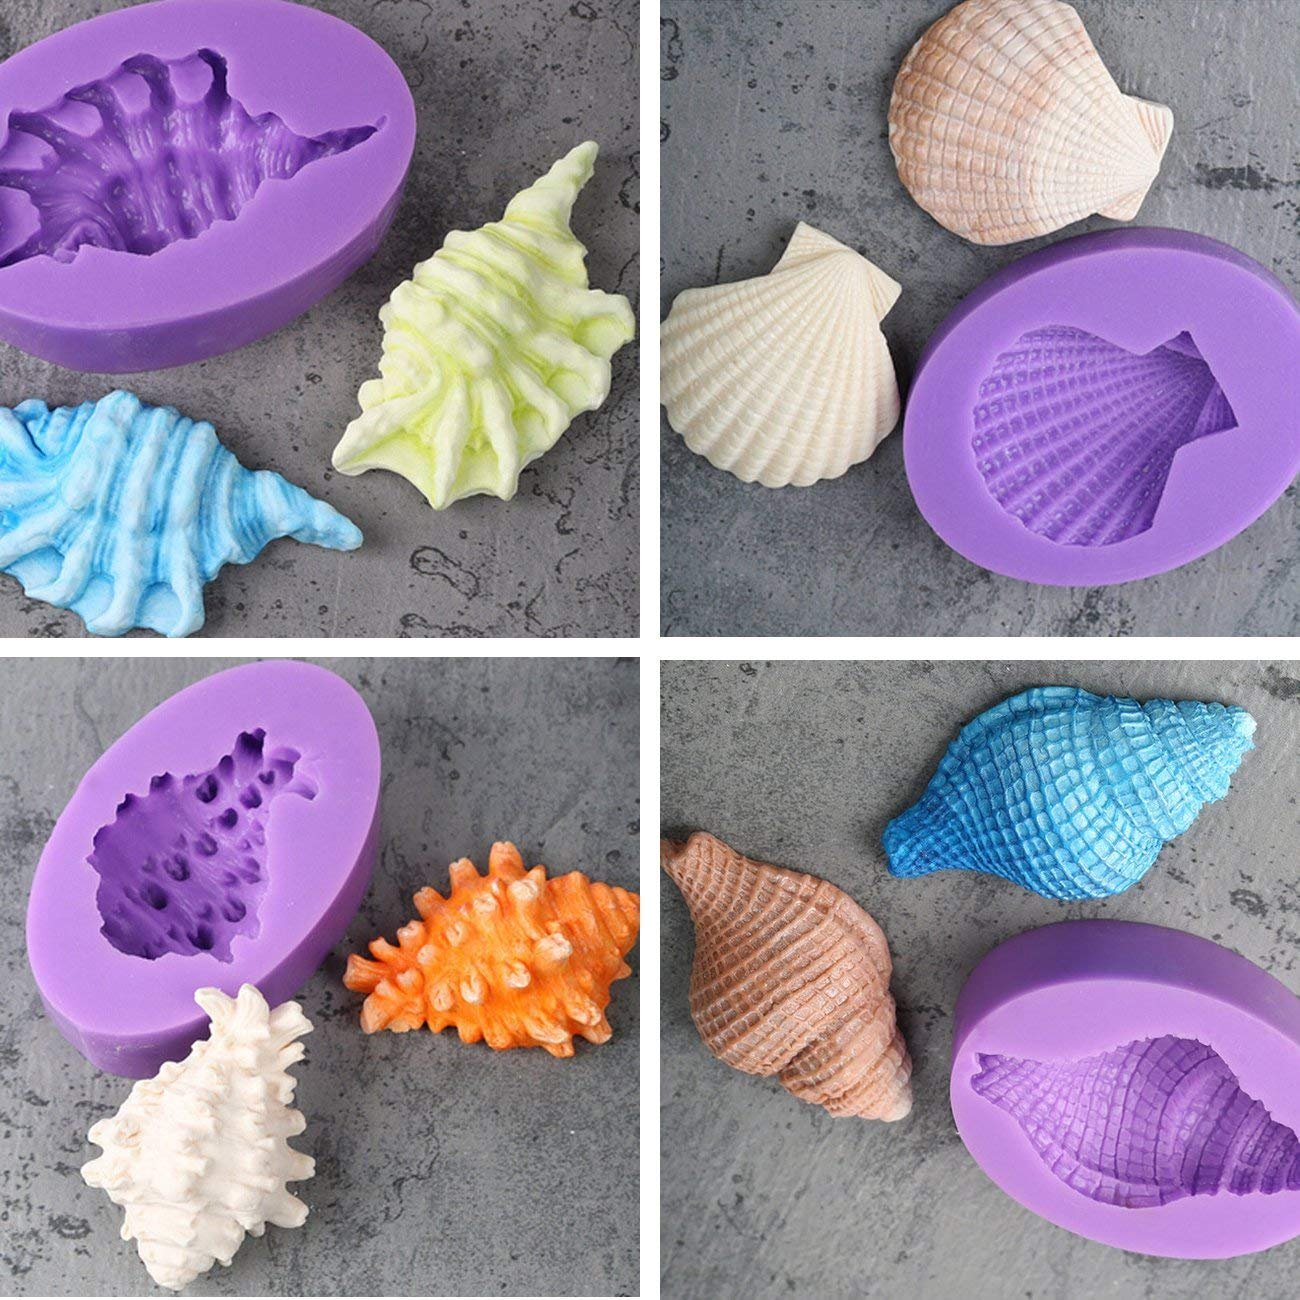 Anyana Seashell Starfish Sea Urchin Seagull mold Fondant silicone Mould for gum paste Sugar paste cake decorating cupcake topper decor set of 7pcs by Anyana (Image #8)